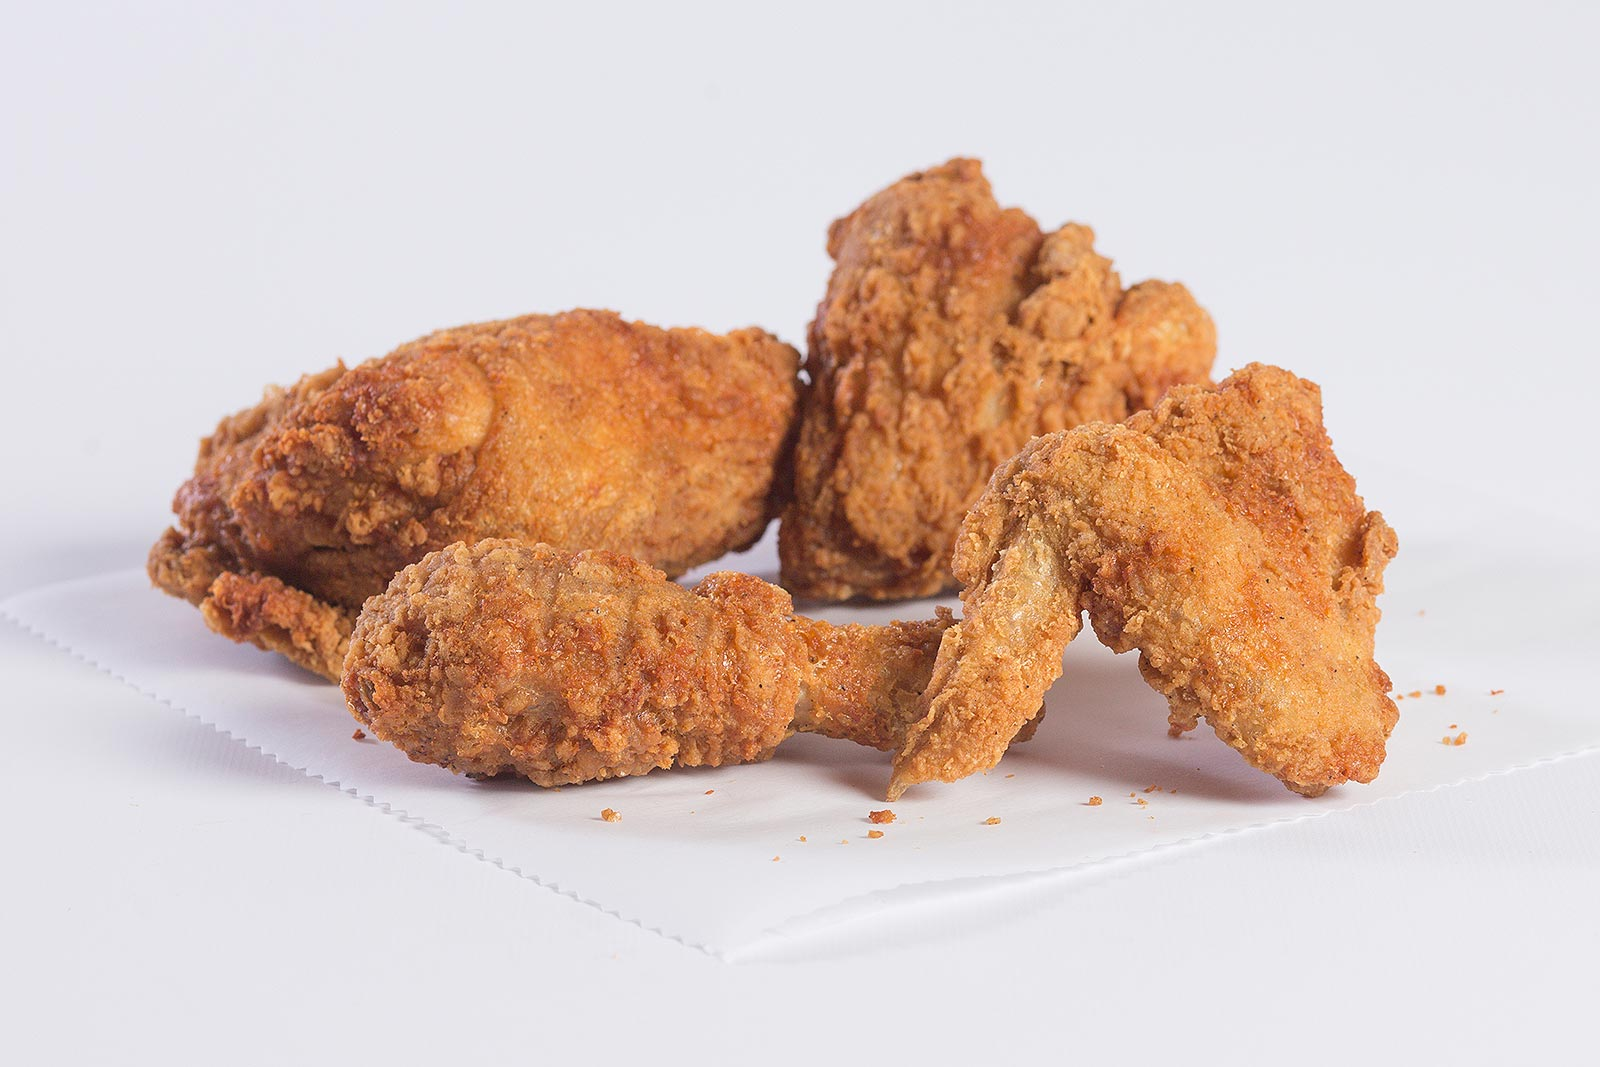 Super Chik'n 8pc Cut, Bulk Pack 10 lb. case image